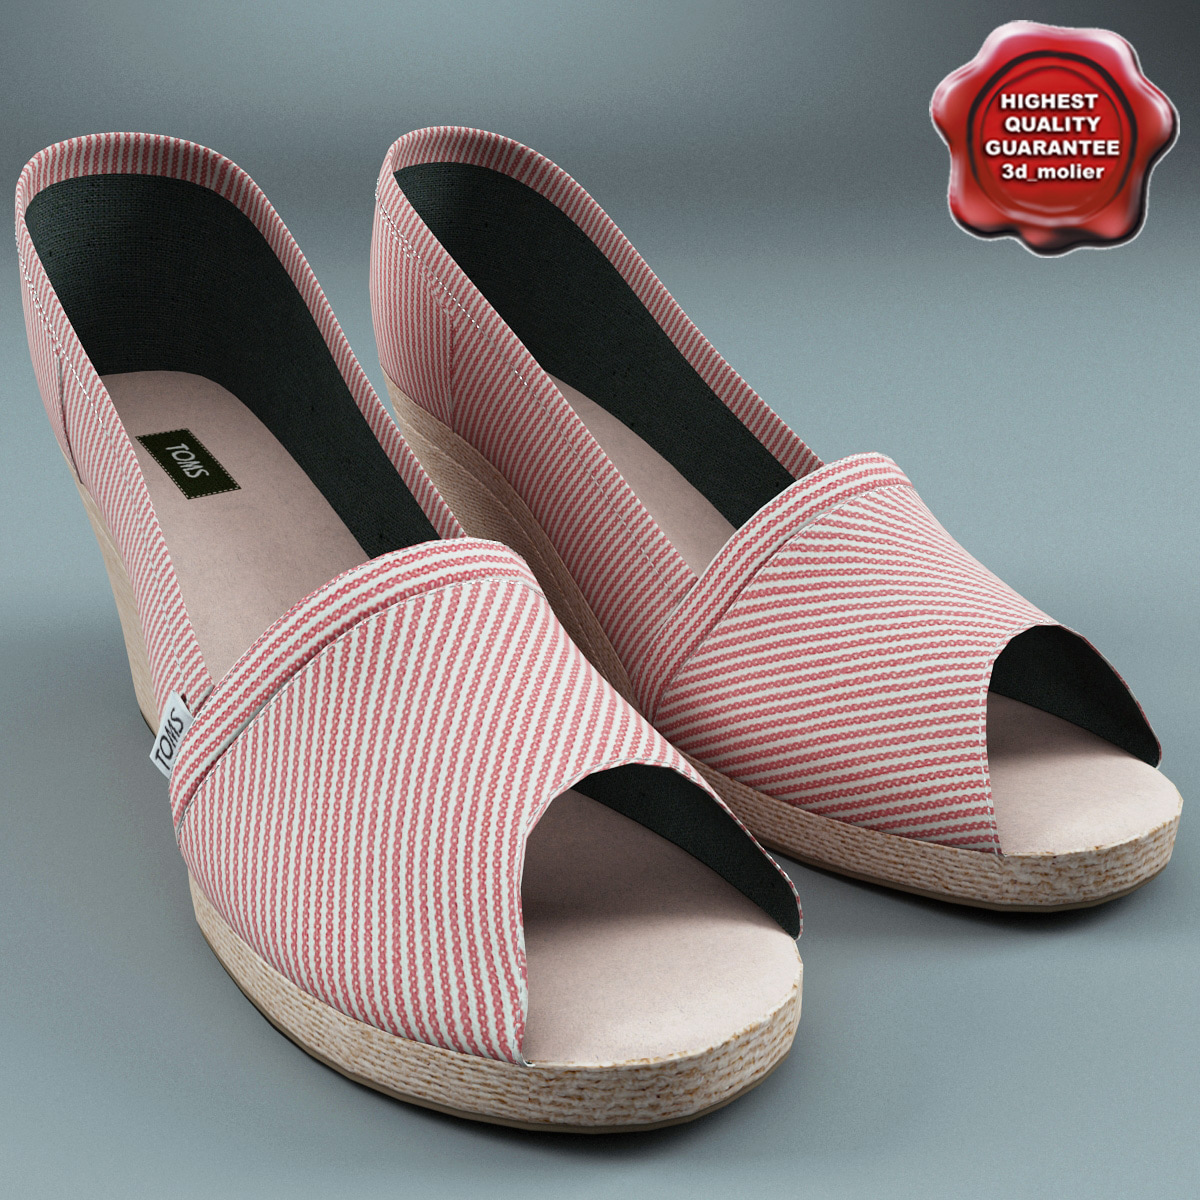 Female Shoes Toms